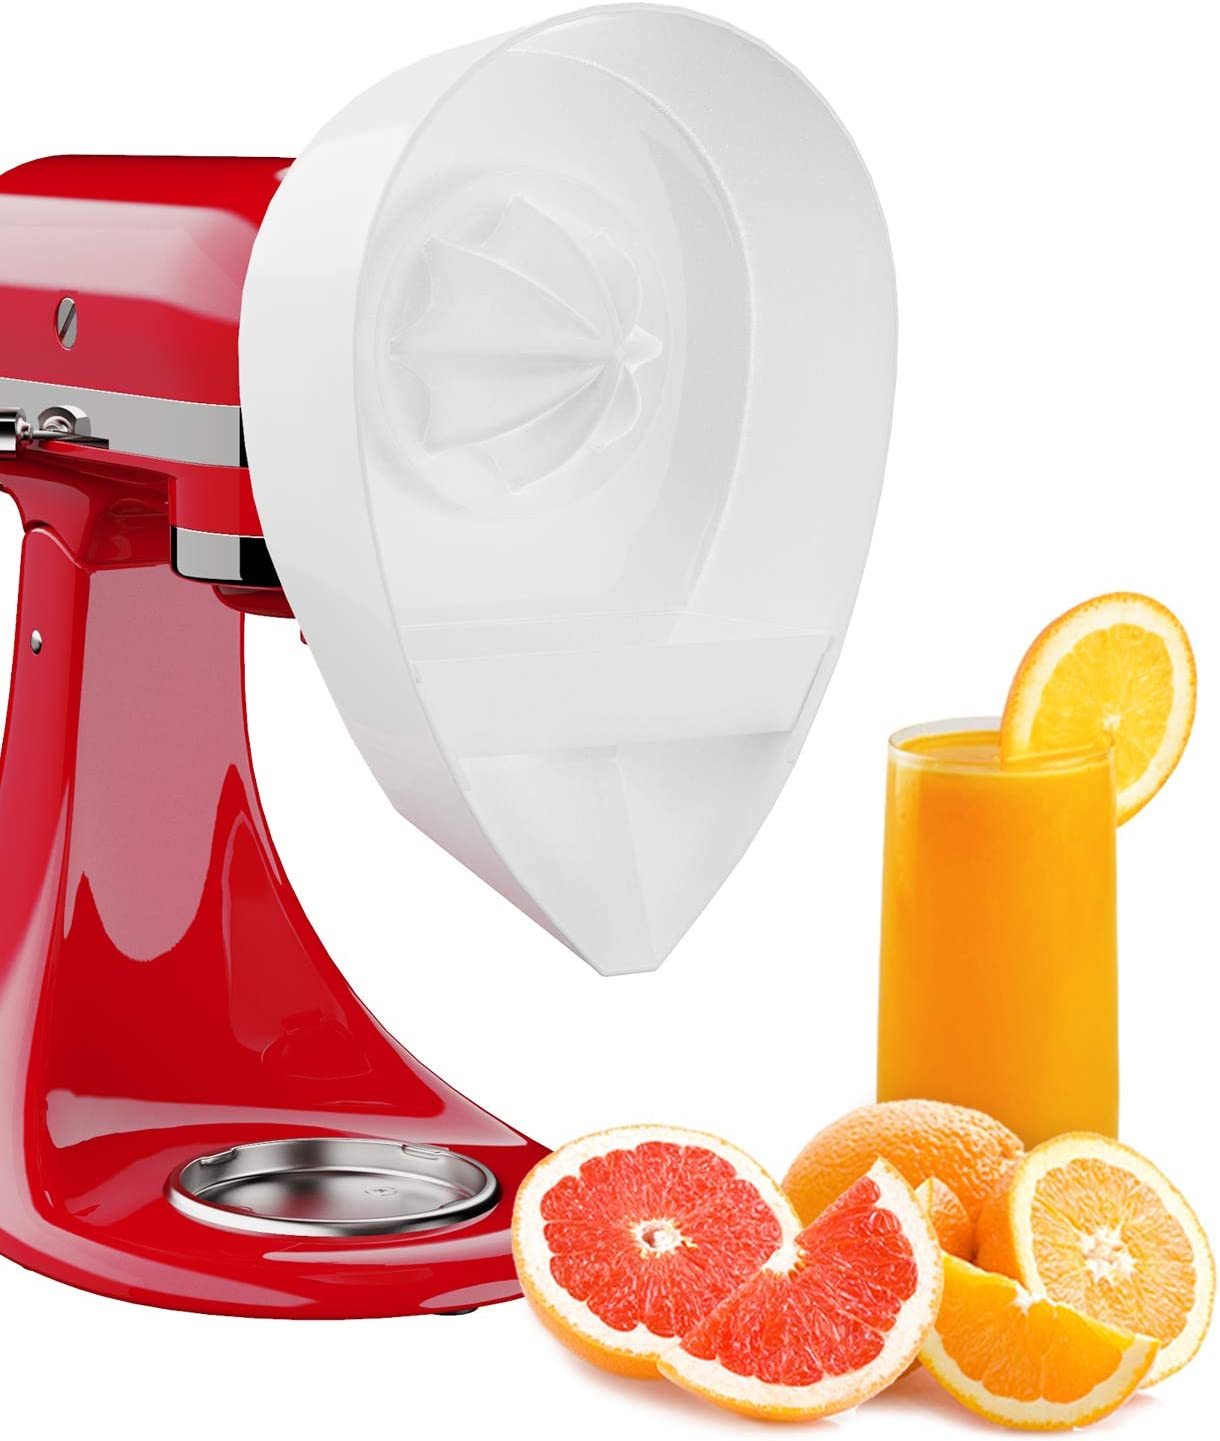 X Home Citrus Juicer Attachment Compatible with Kitchenaid Stander Mixer to Extract Juice of Orange, Lime, Lemon and Grapefruit, Electric Citrus Fruits Squeezer